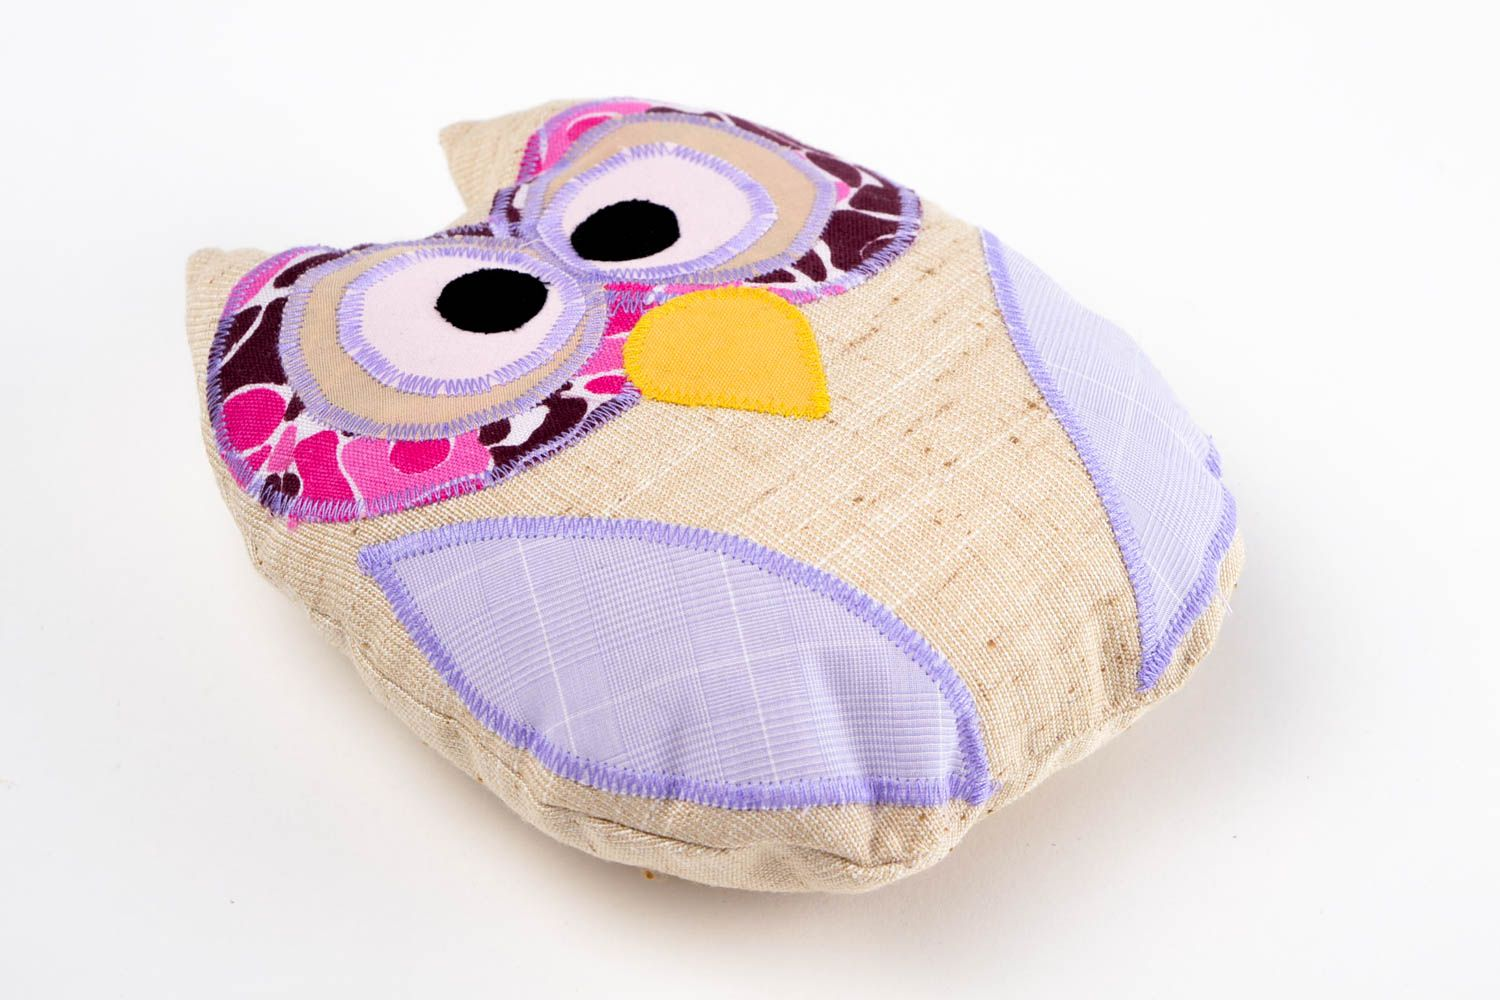 pillow toys Handmade bright colorful toy unusual cute textile toy stylish owl toy - MADEheart.com